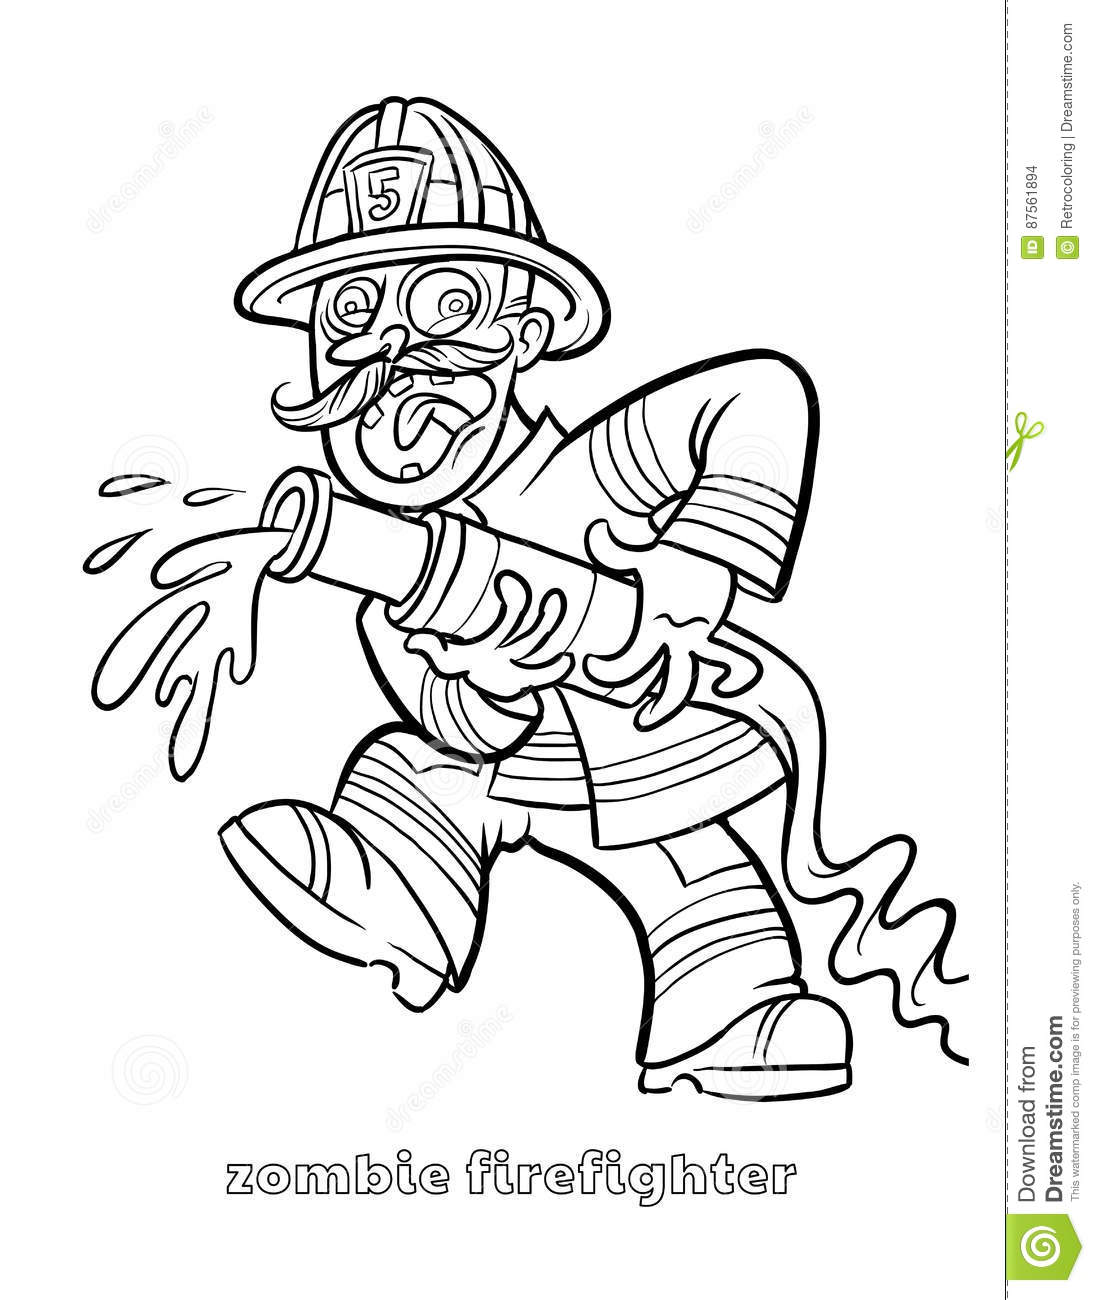 Funny Zombie Firefighter Coloring Page Stock Vector - Illustration ...